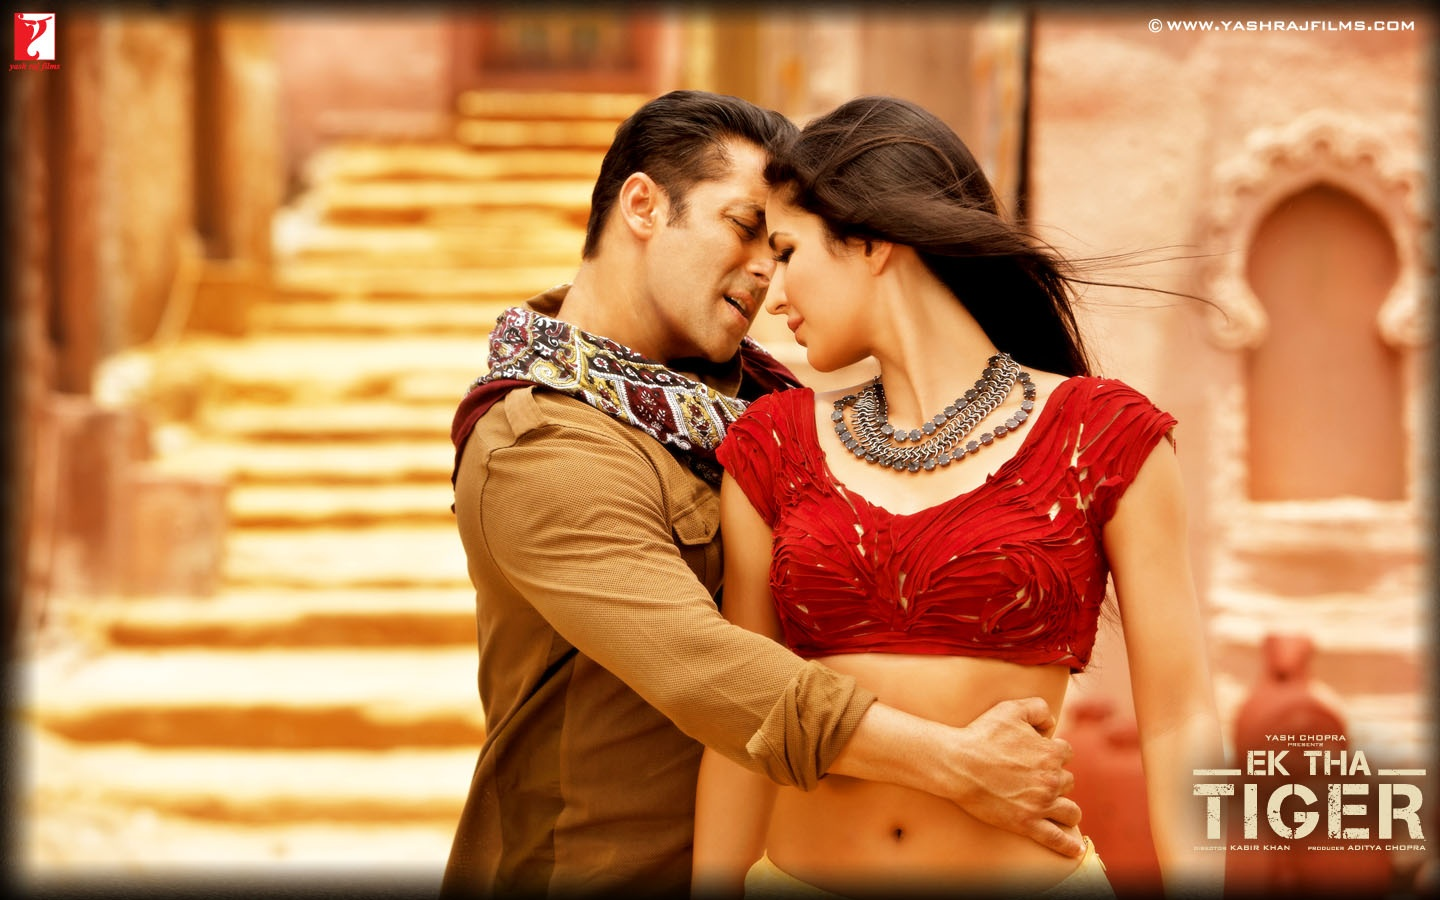 Katrina kaif and salman khan in mashallah song 1440 x 900 download